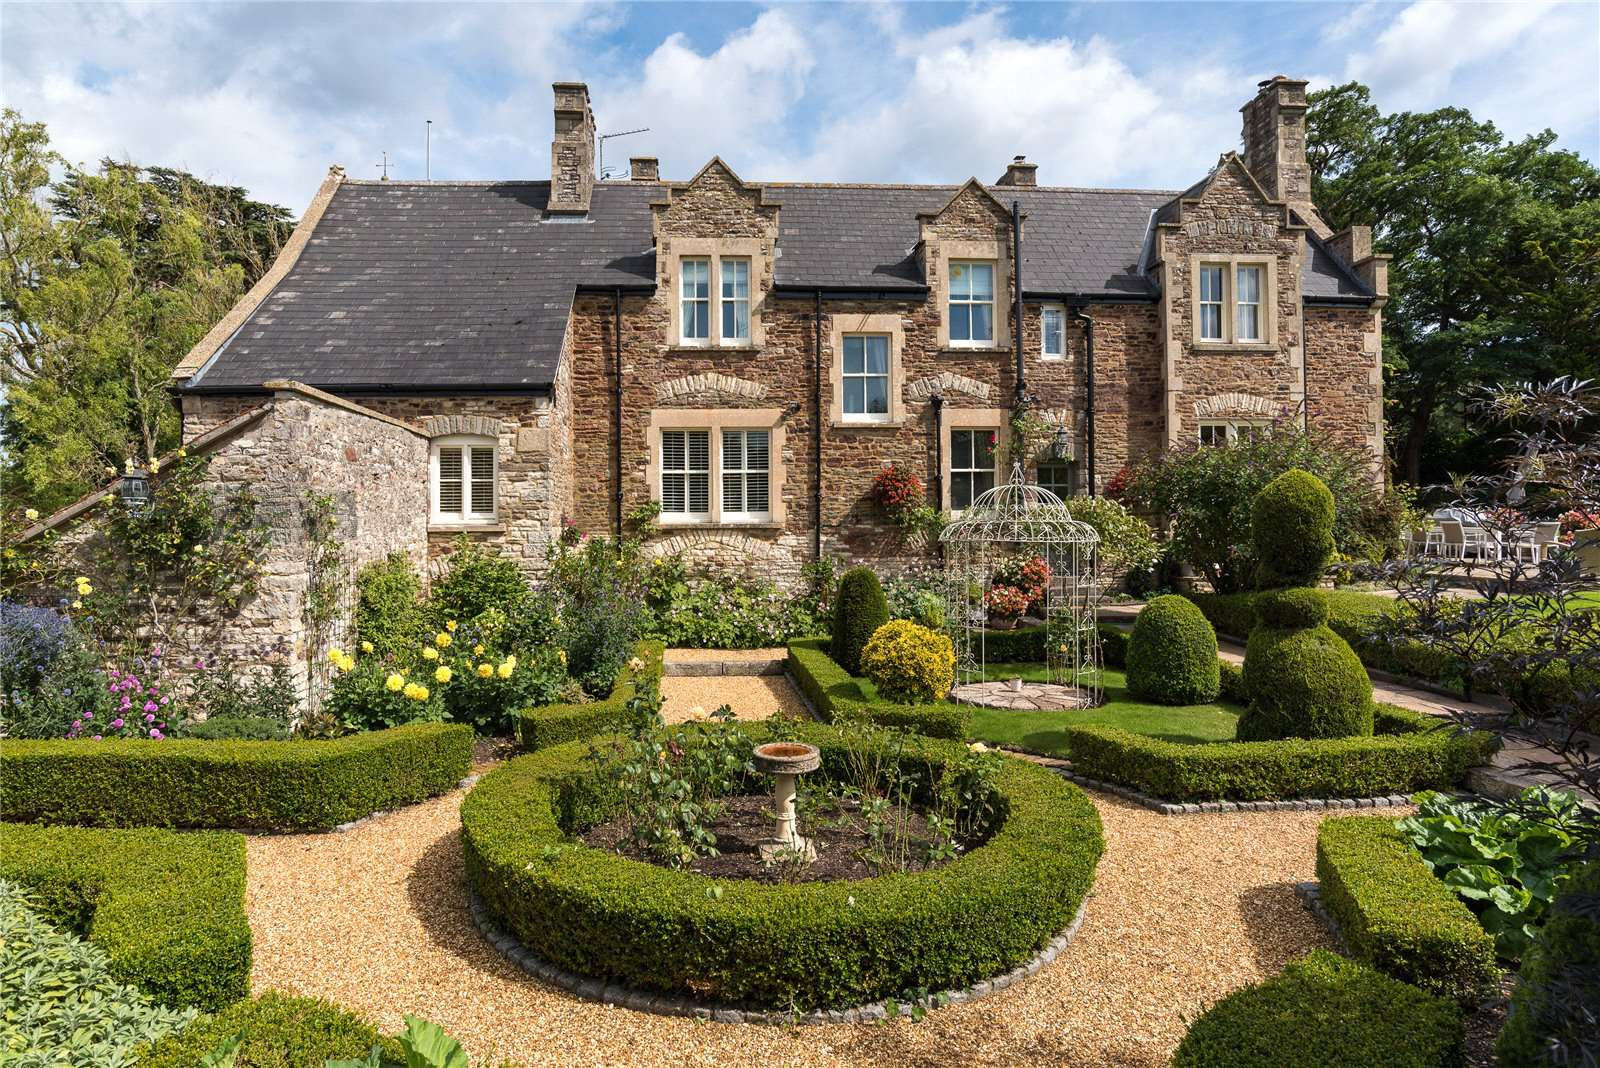 25 grand homes for sale, from a country vicarage to a Kensington townhouse, as seen in Country Life - Country Life